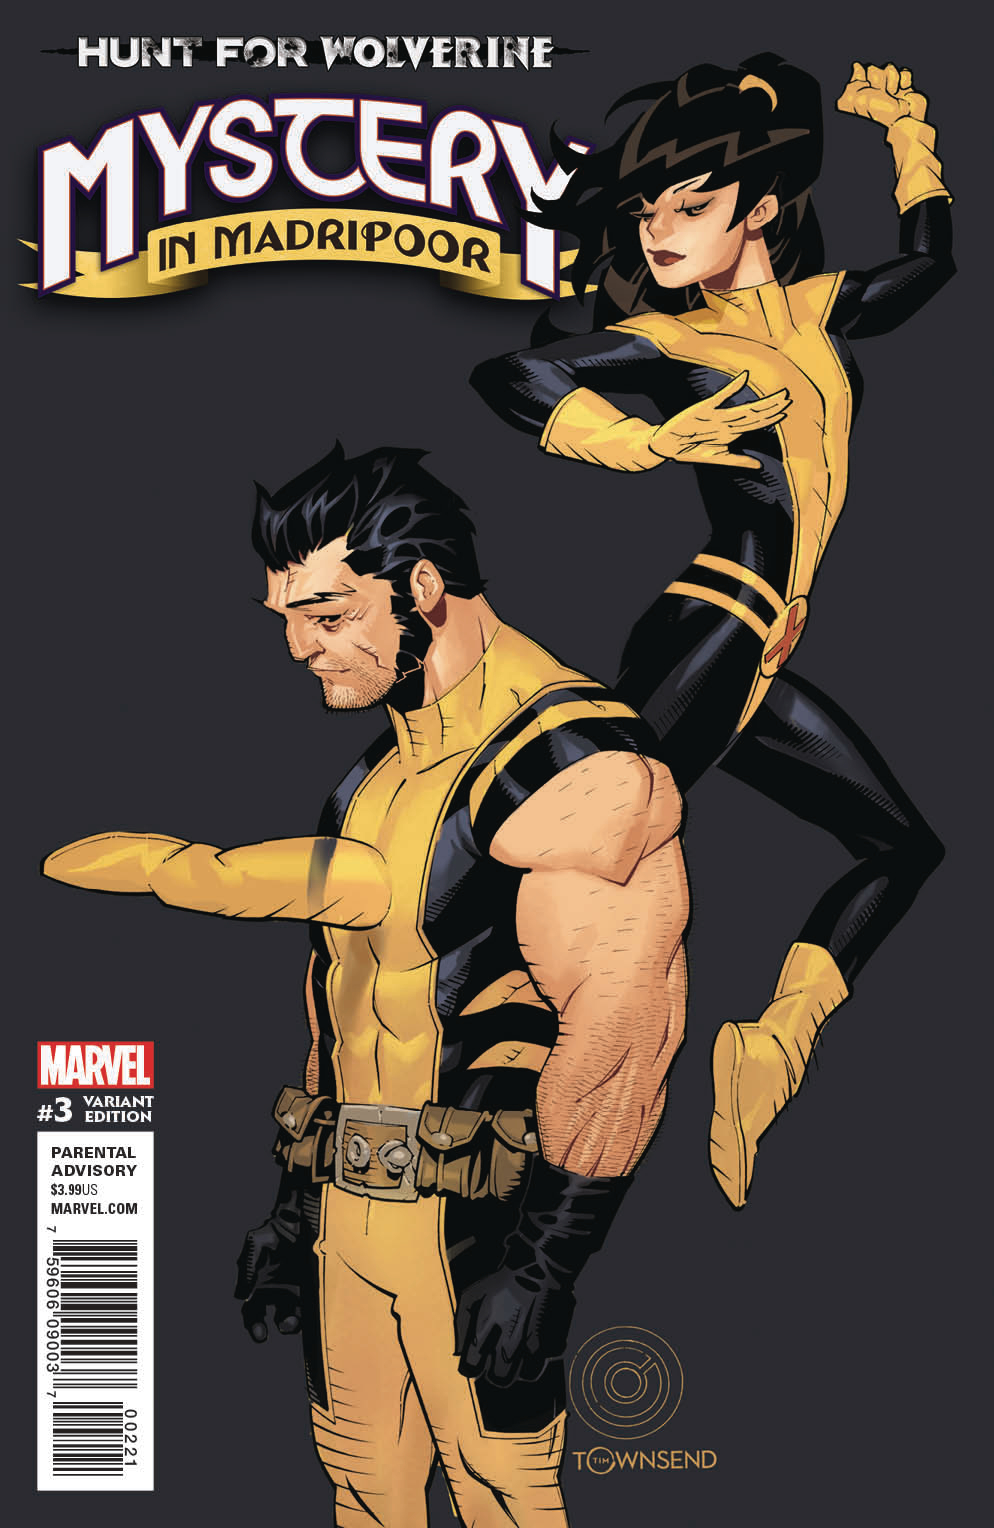 HUNT FOR WOLVERINE MYSTERY MADRIPOOR #3 (OF 4) BACHALO VAR